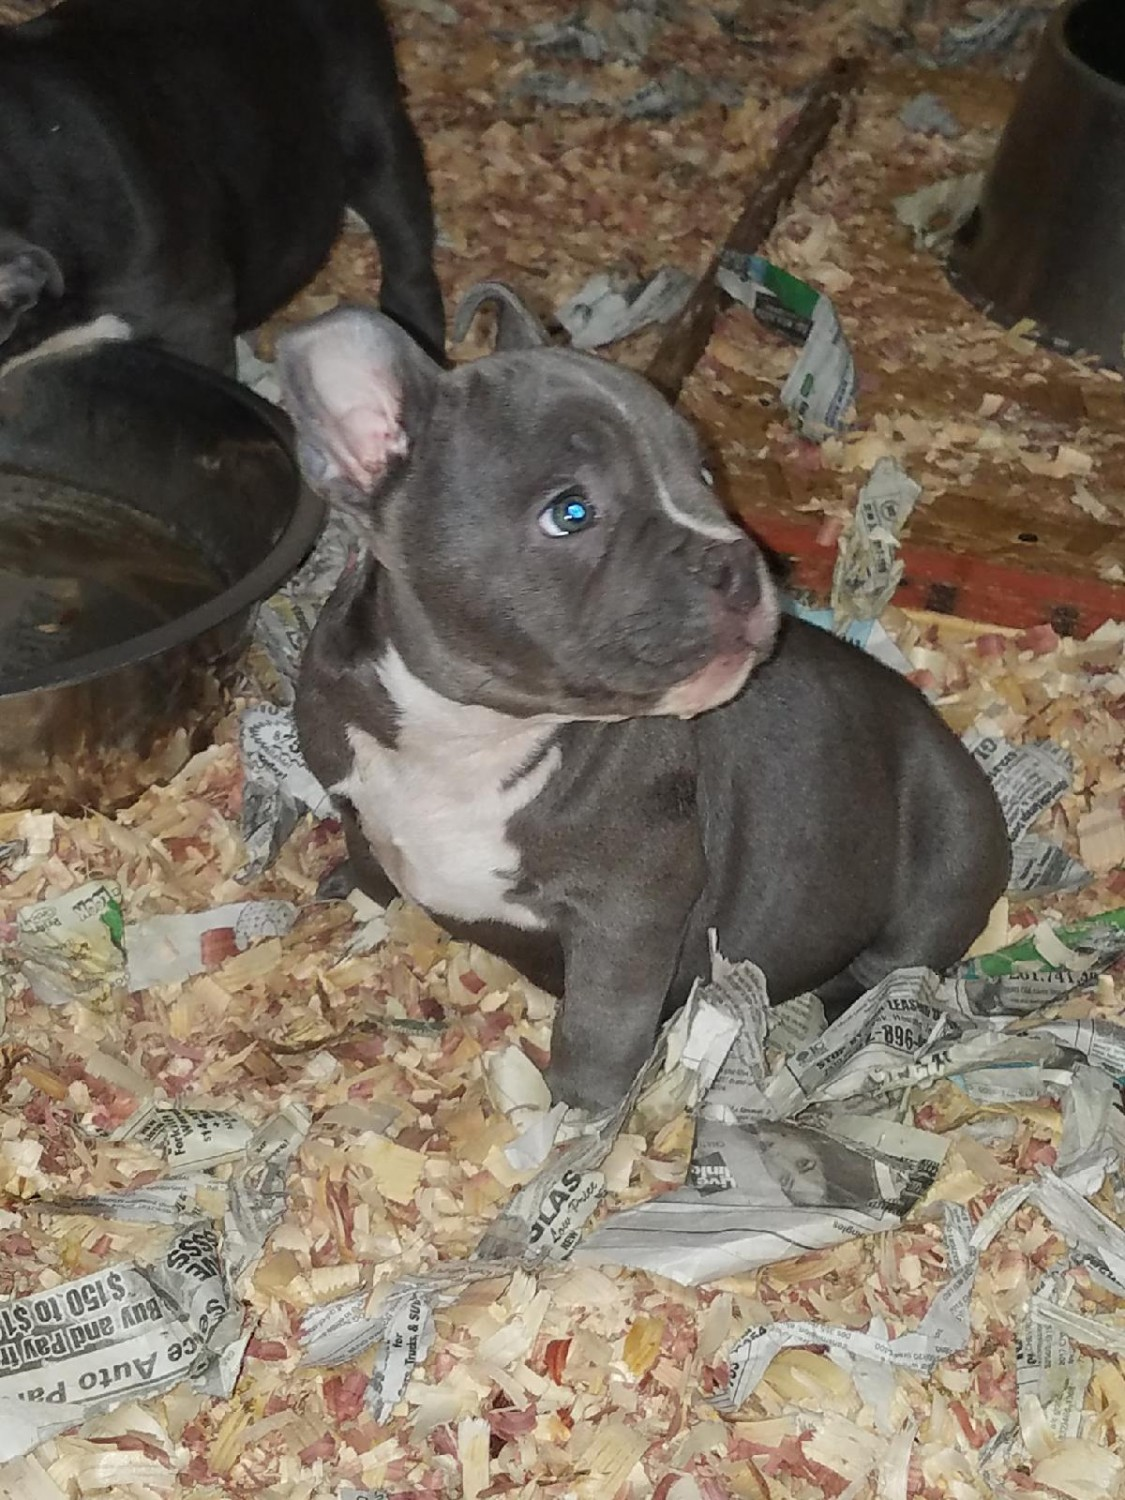 American Bully Puppies For Sale | Houston, TX #267571